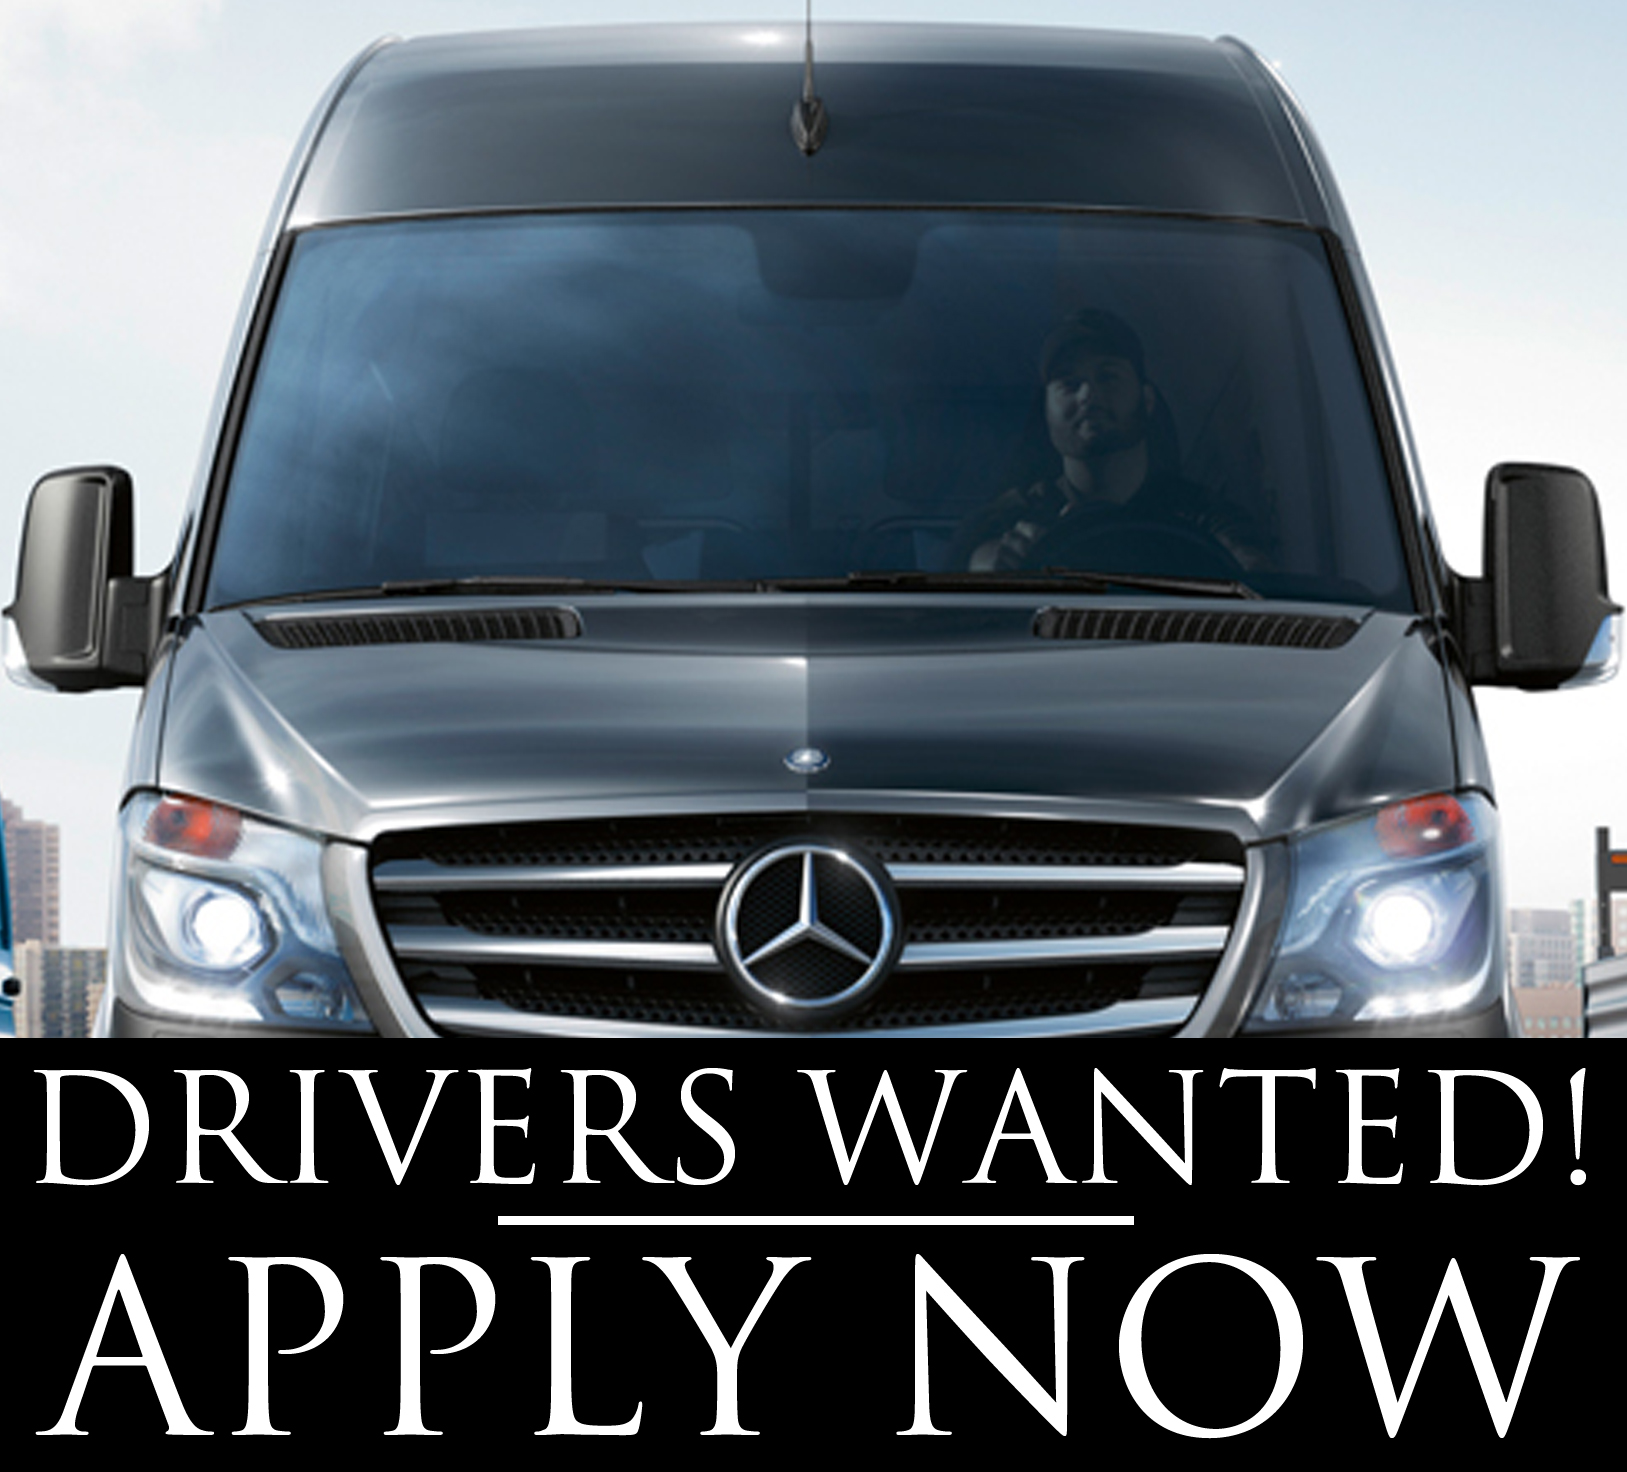 DRIVERS WANTED drive away